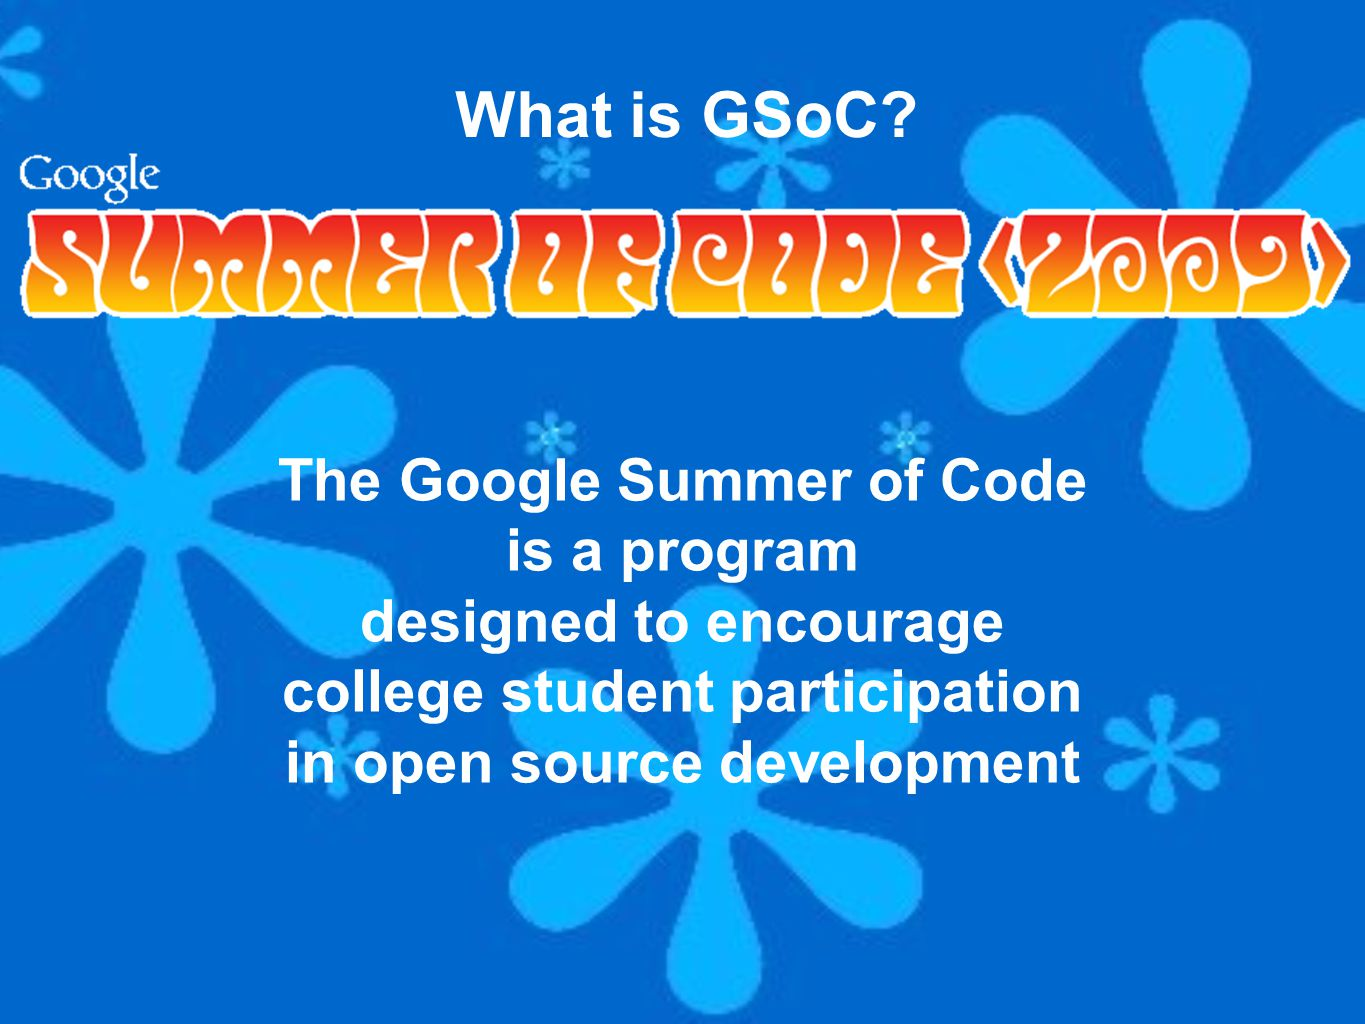 The Google Summer of Code is a program designed to encourage college student participation in open source development What is GSoC?